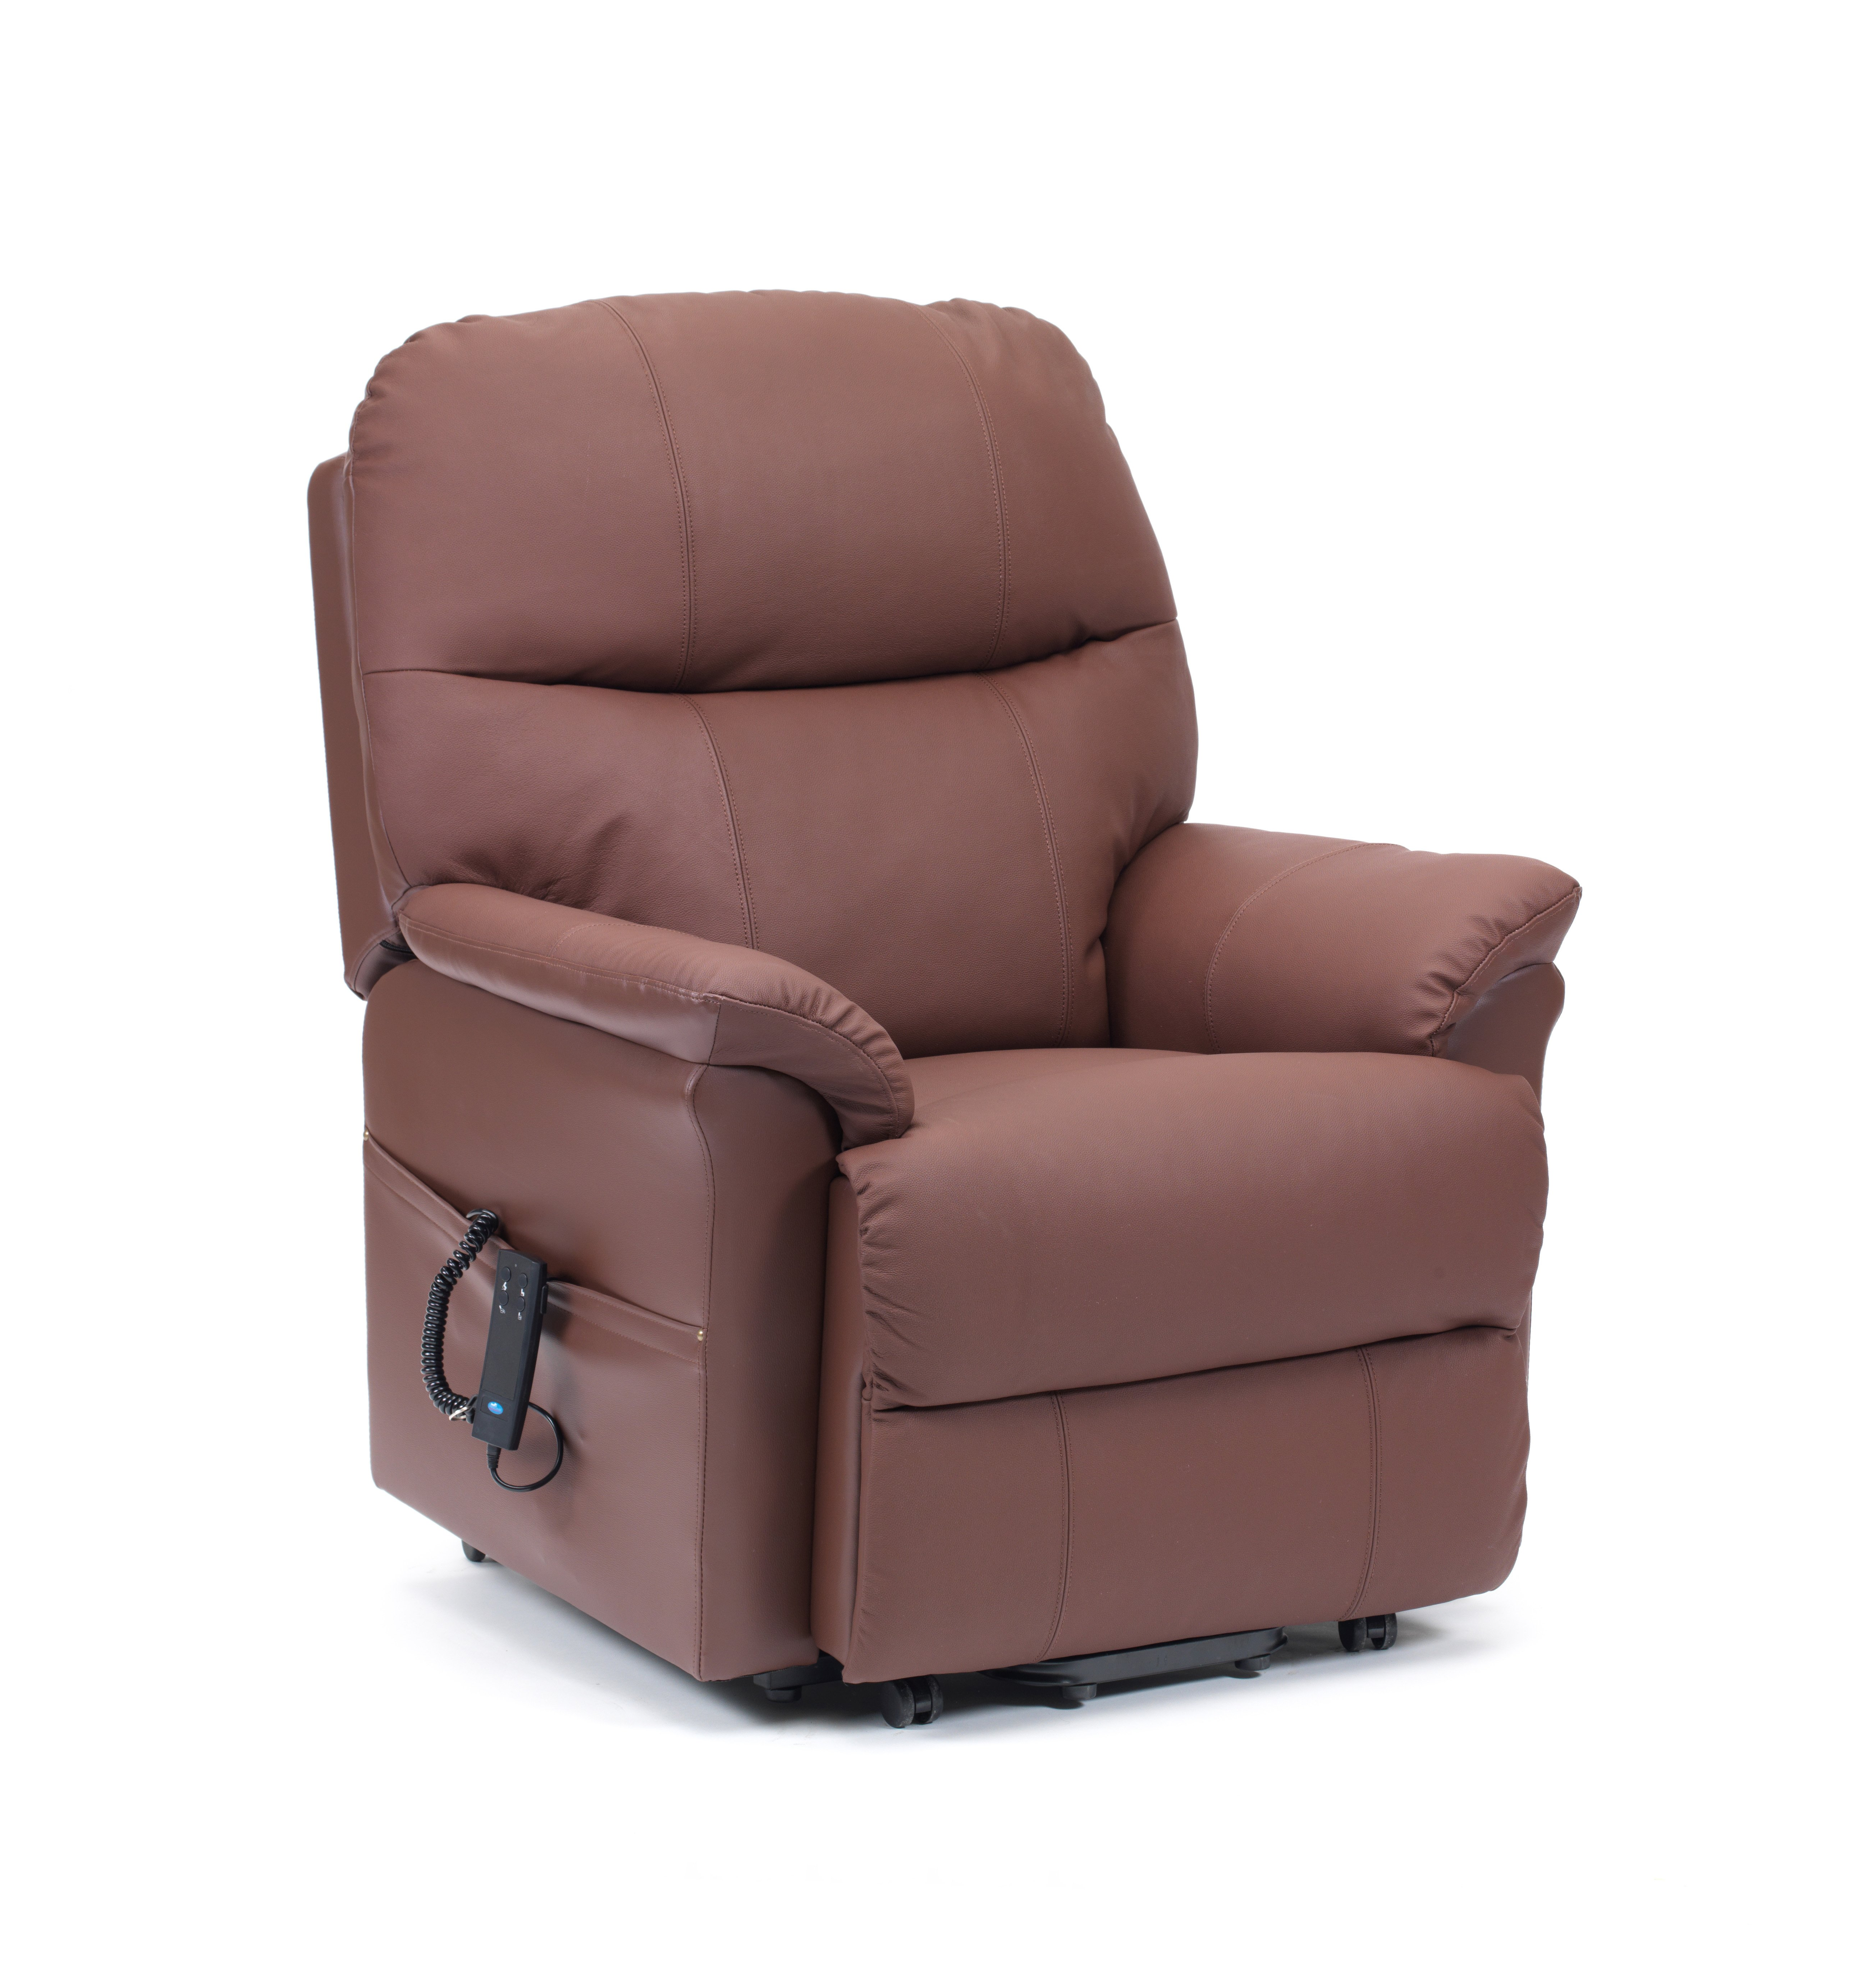 Leather Sofa Upholstery Liverpool: Orthopaedic High Chairs & Riser Recliners In Liverpool